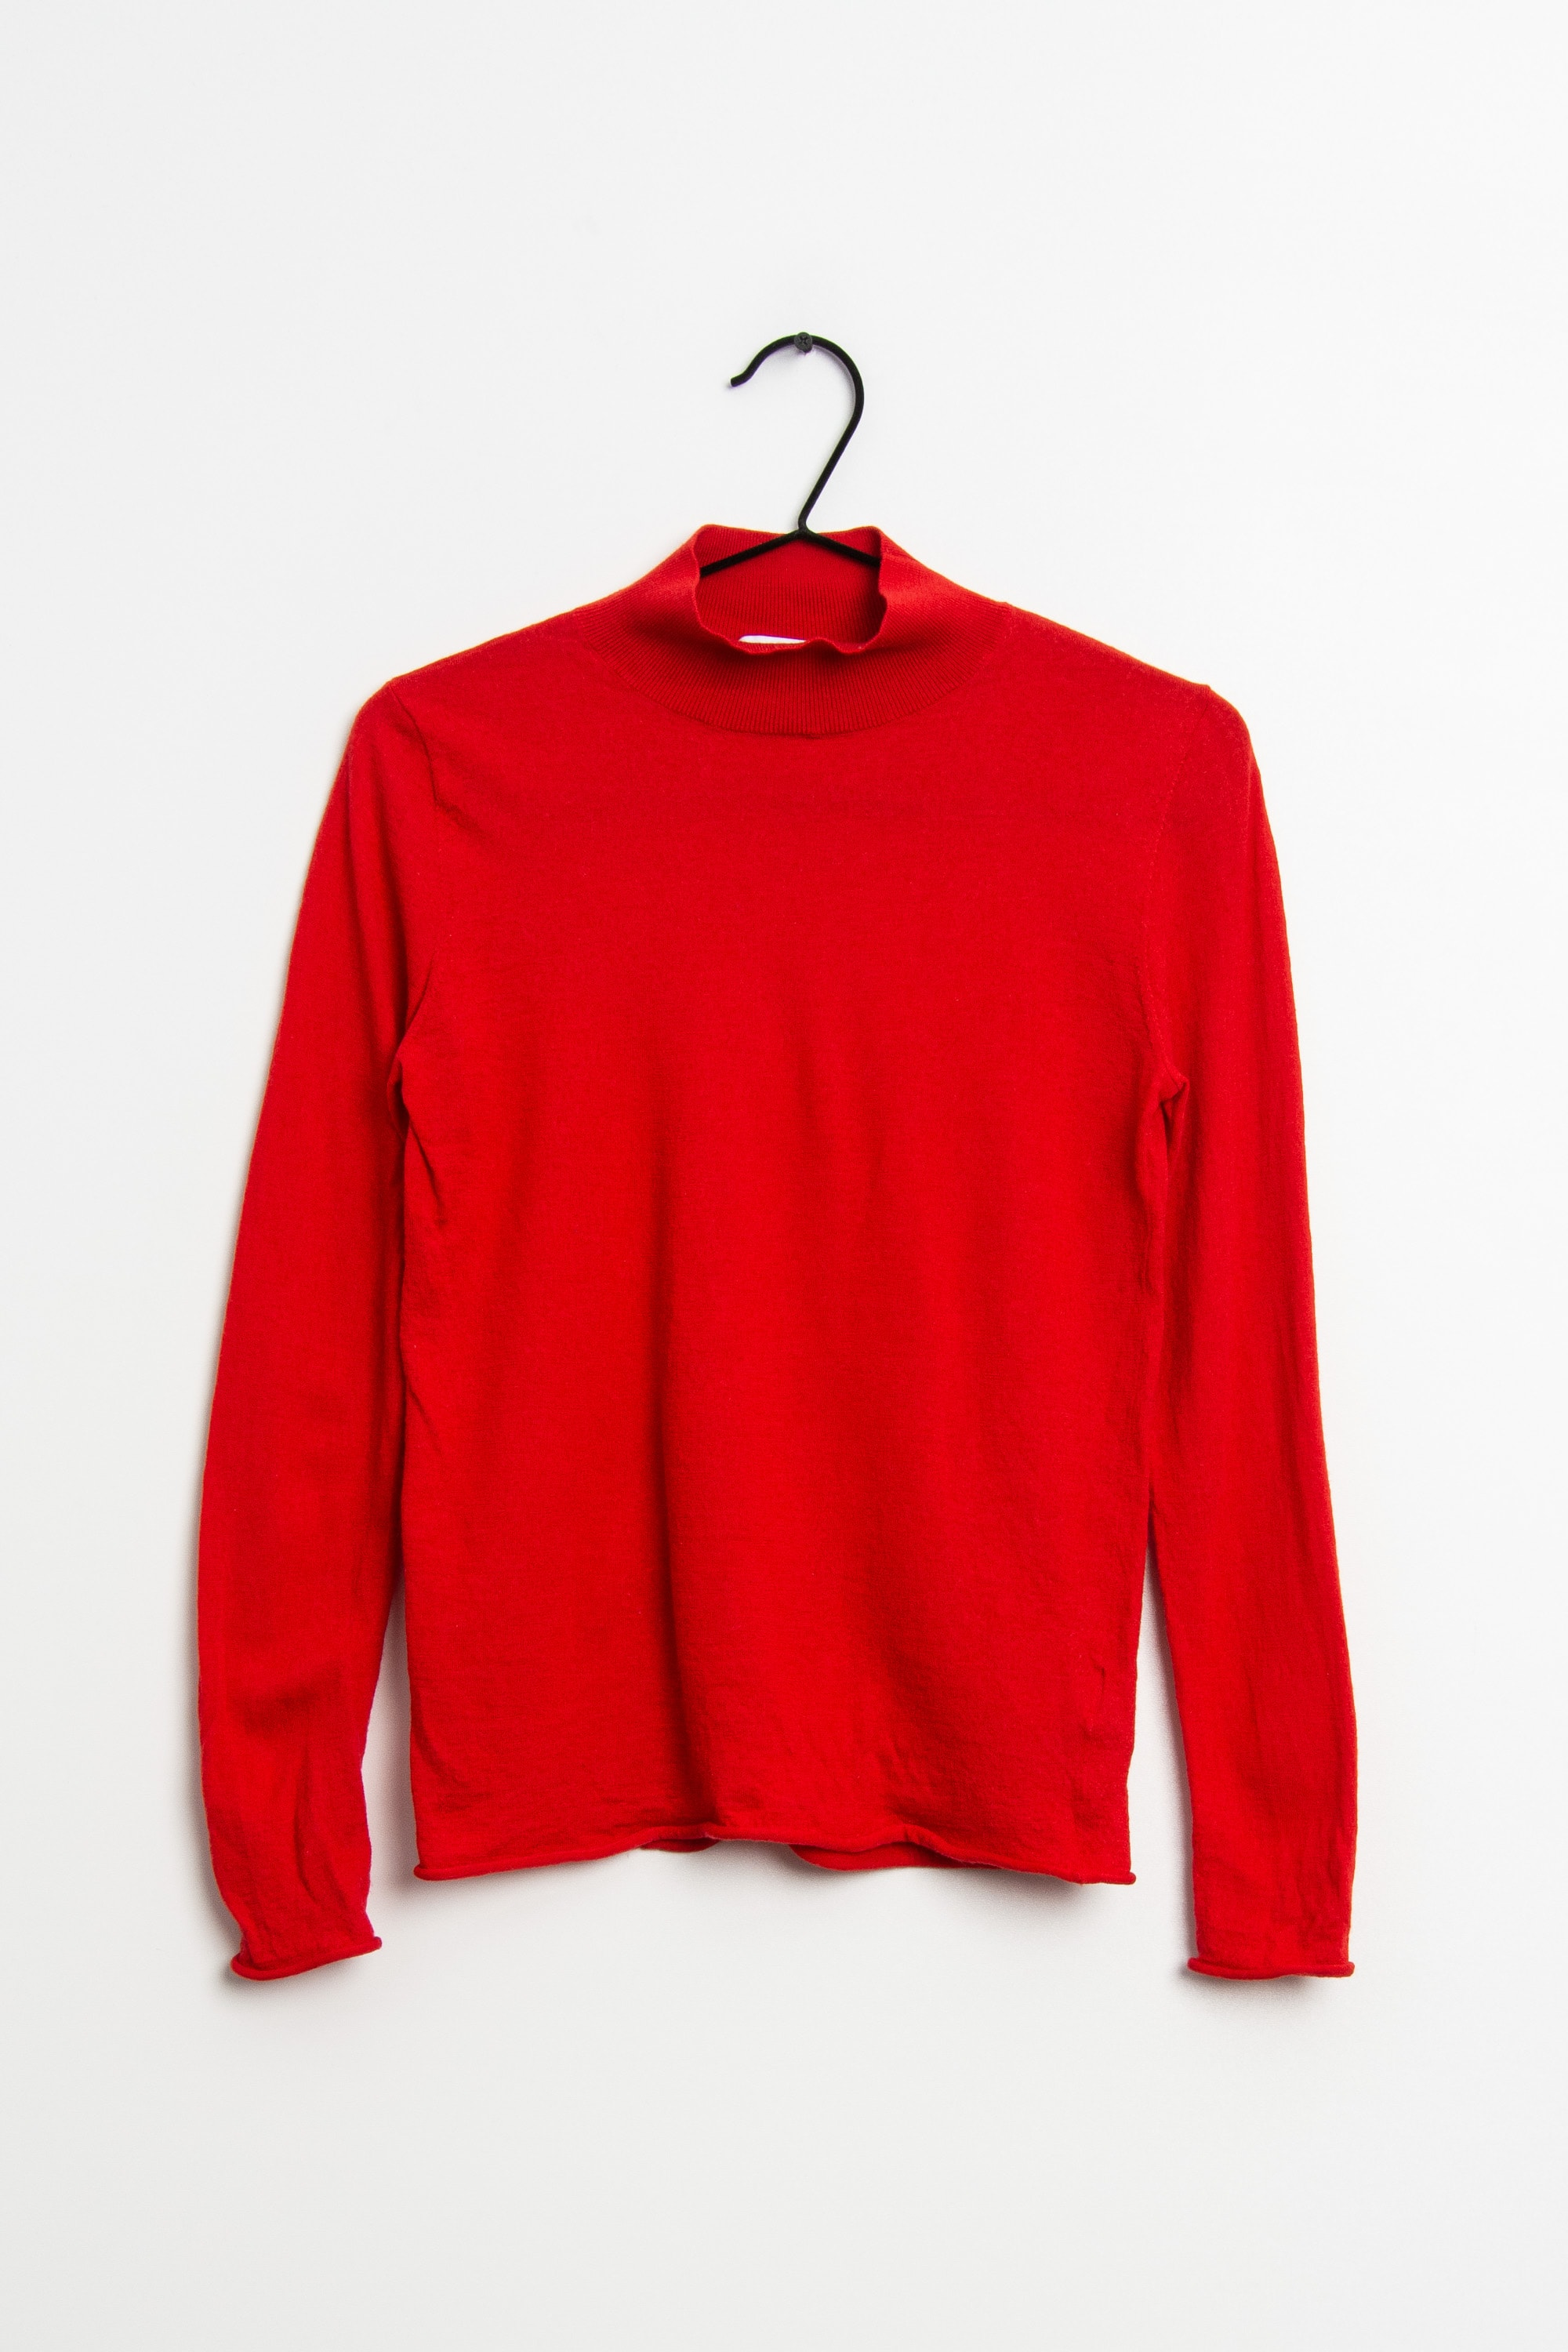 & other stories Strickpullover Rot Gr.M